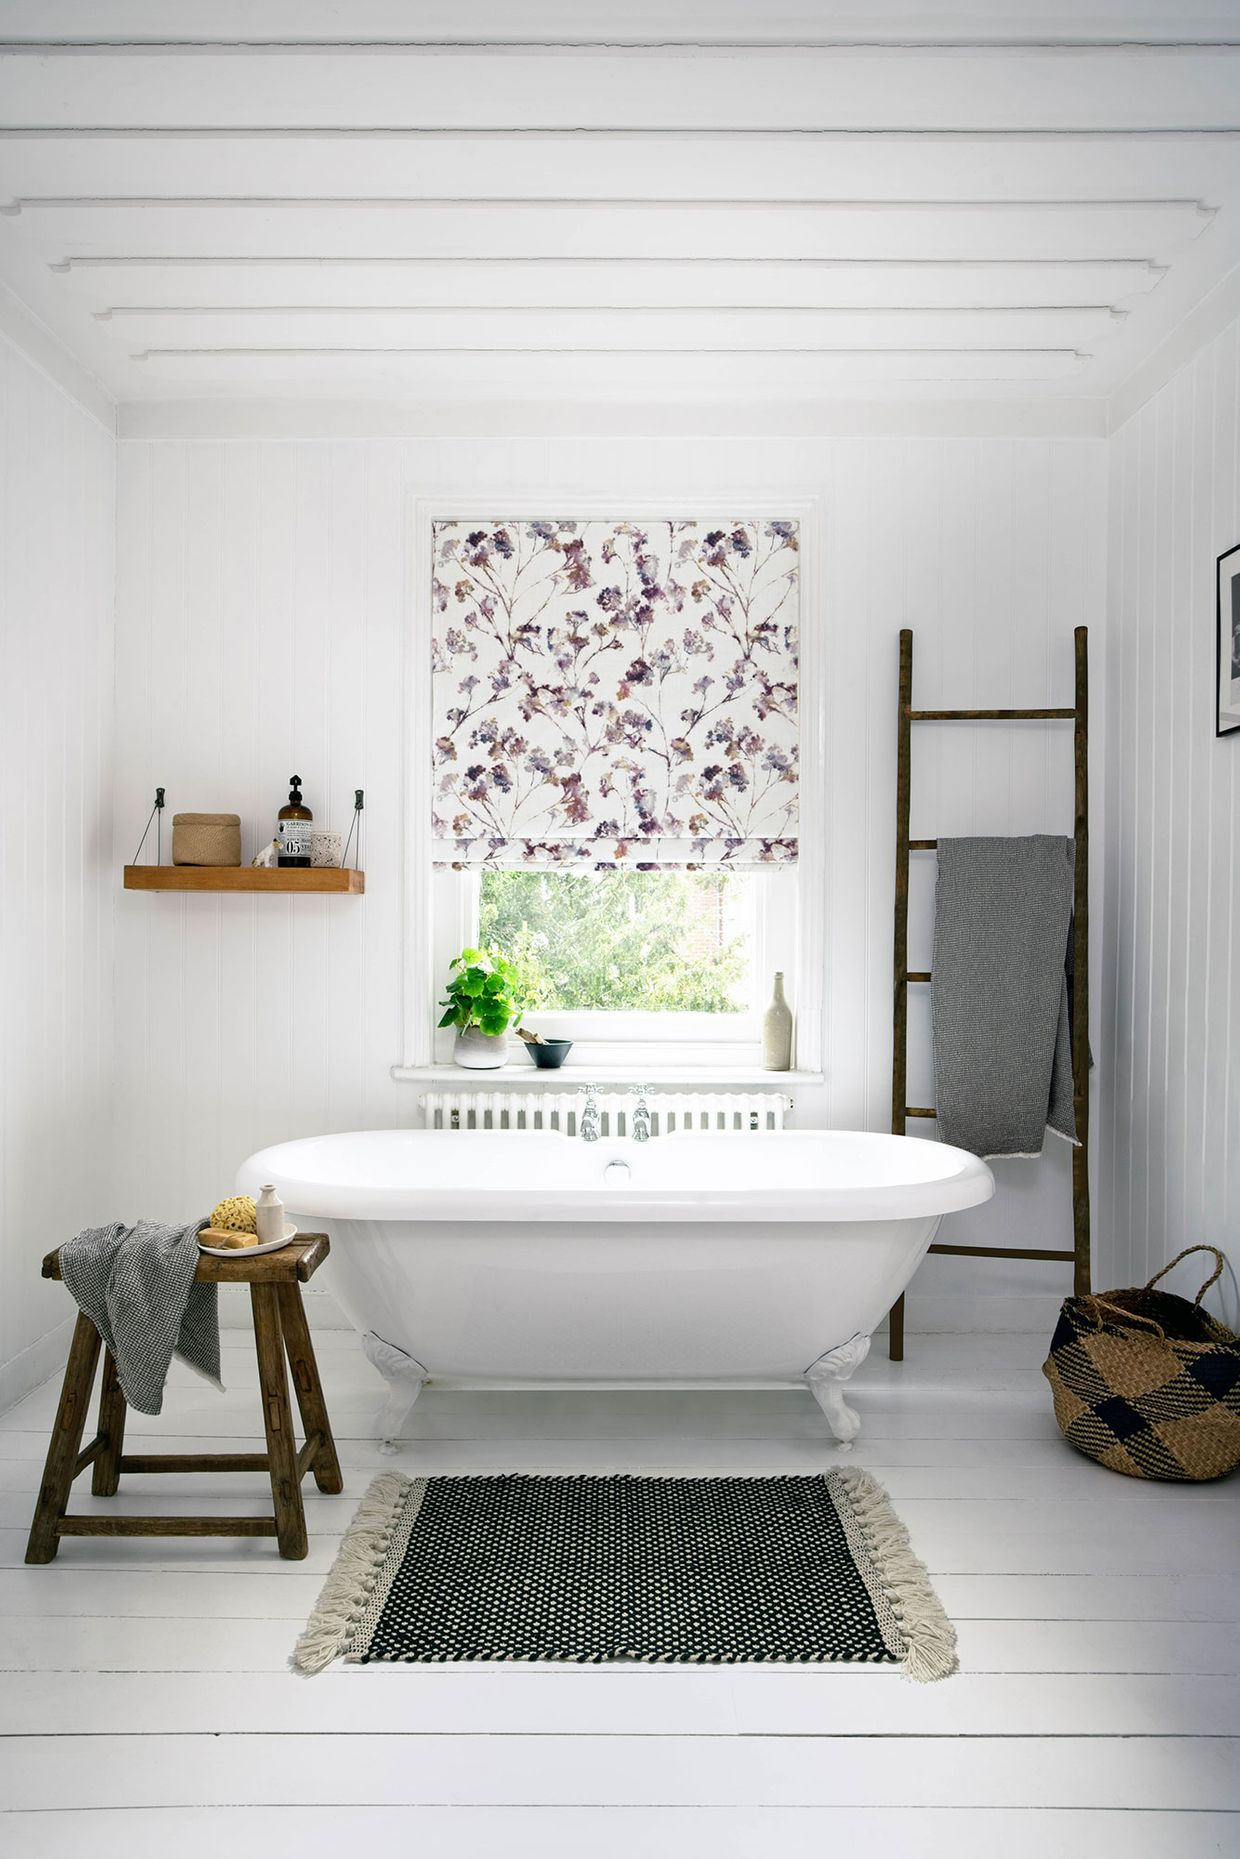 In this white bathroom  window behind the white bath is dressed with white roman blinds printed with pink and purple flowers.